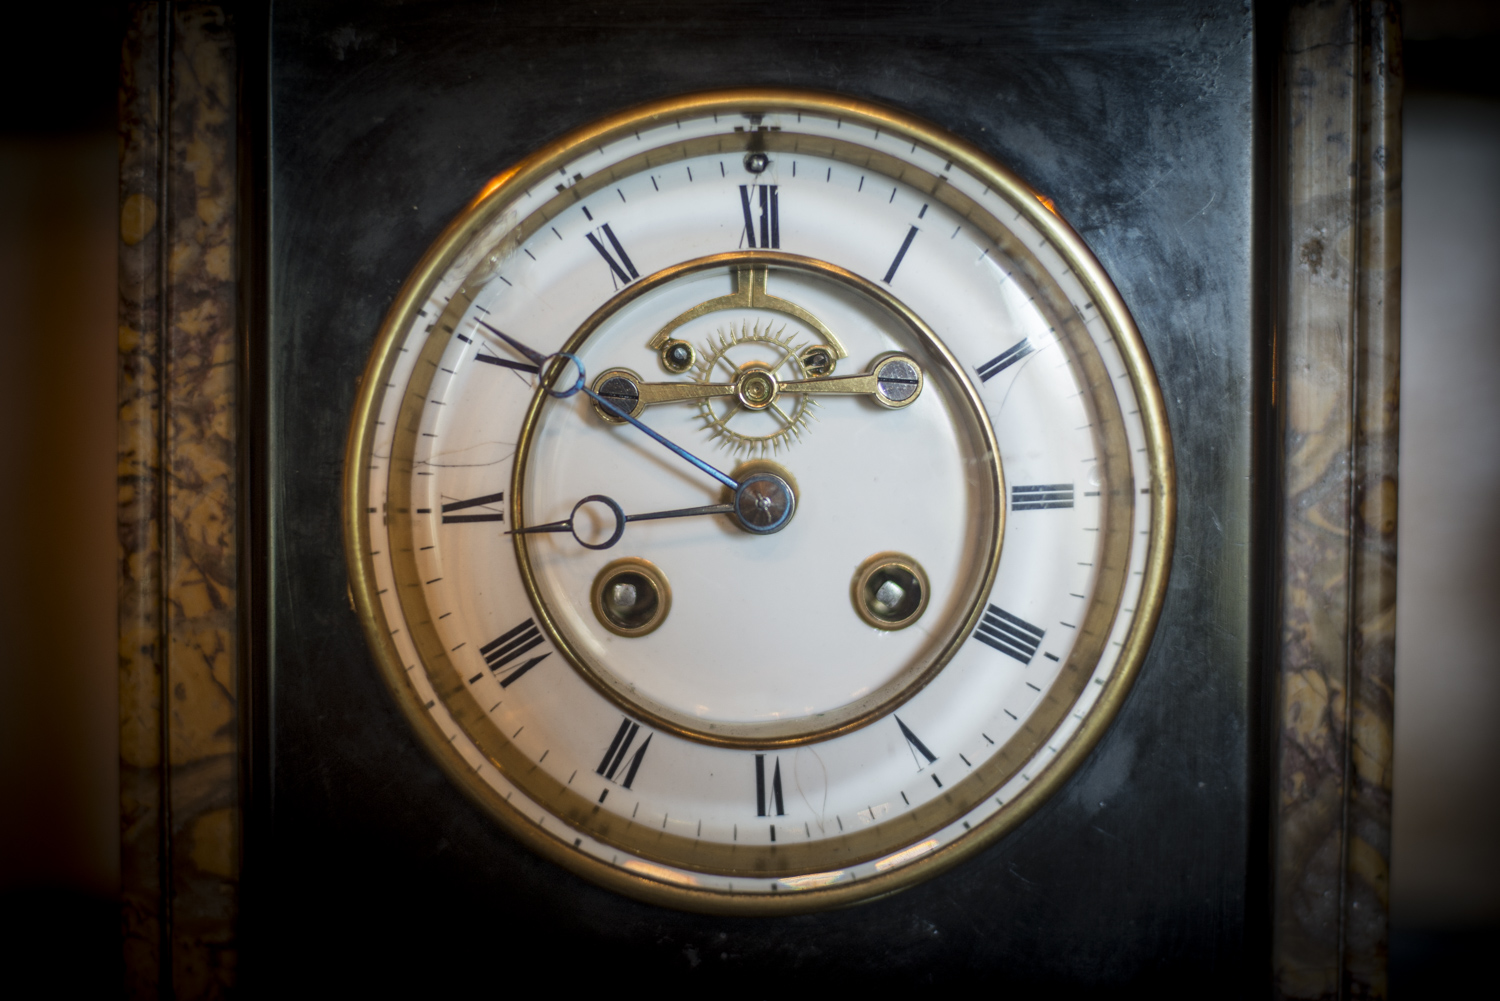 Clock in the Smoking Room